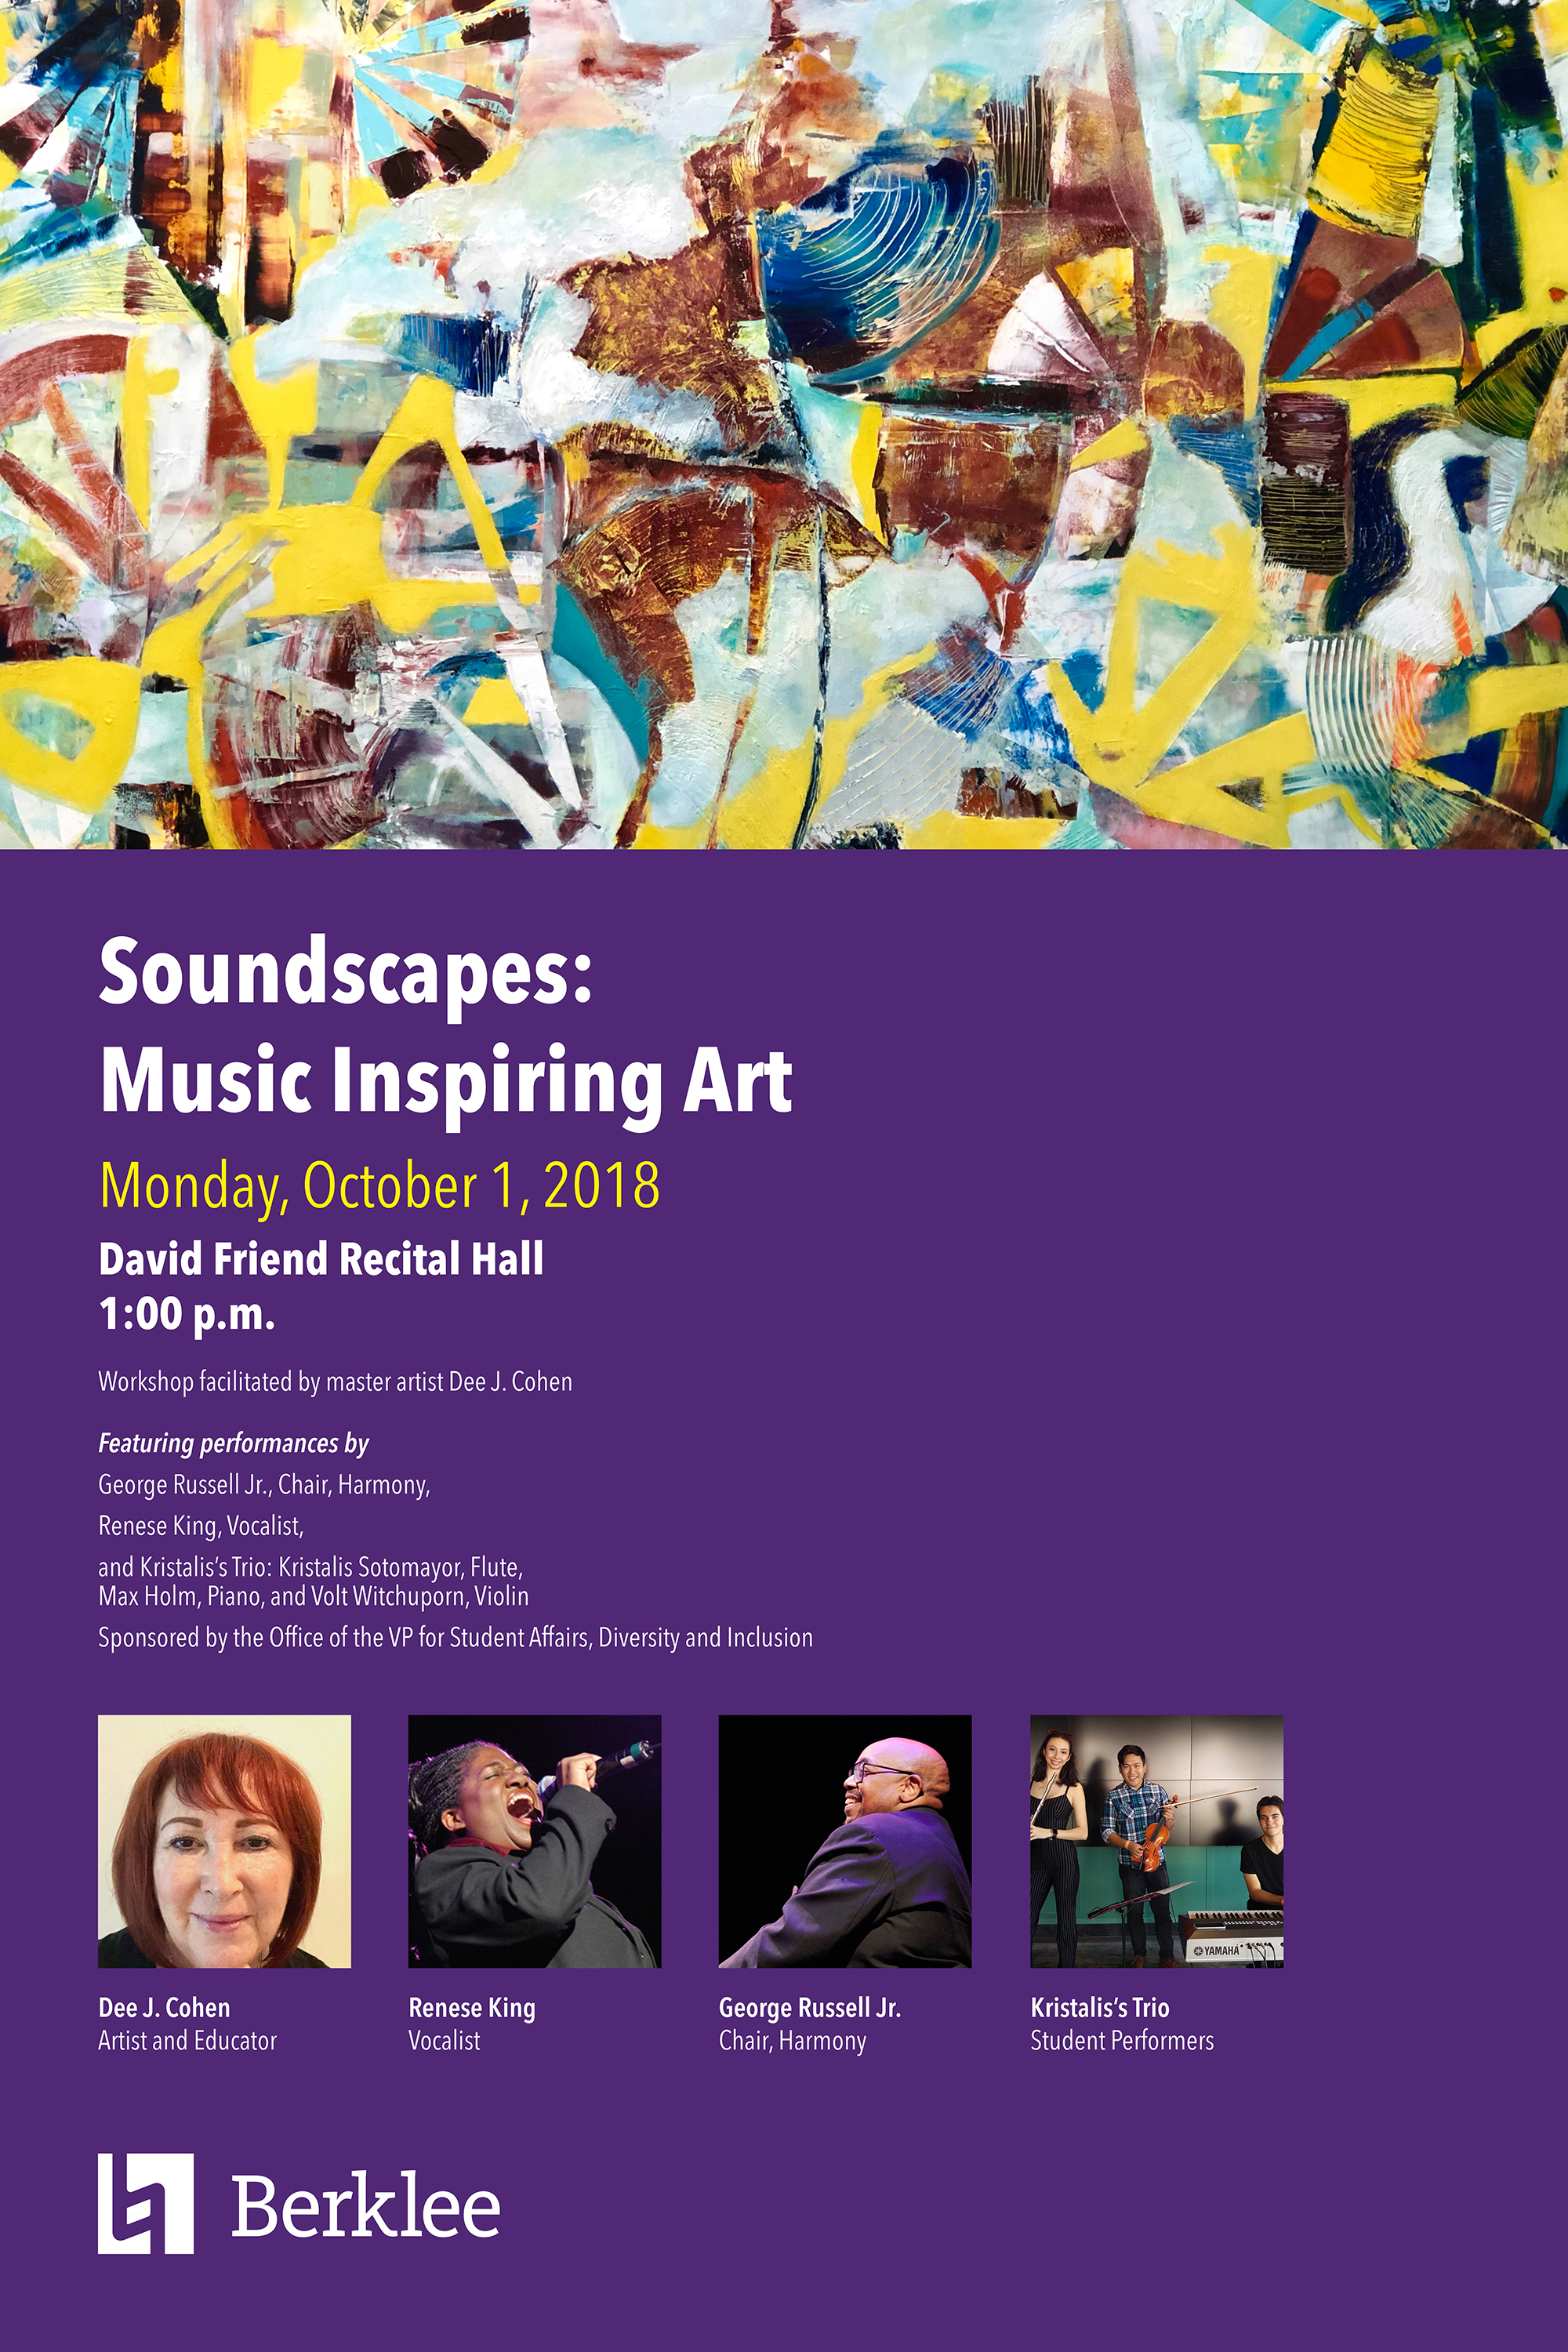 Soundscapes: Music Inspiring Art event hosted by Dee J. Cohen, Artist and Educator, at Berklee College of Music in Boston, MA.